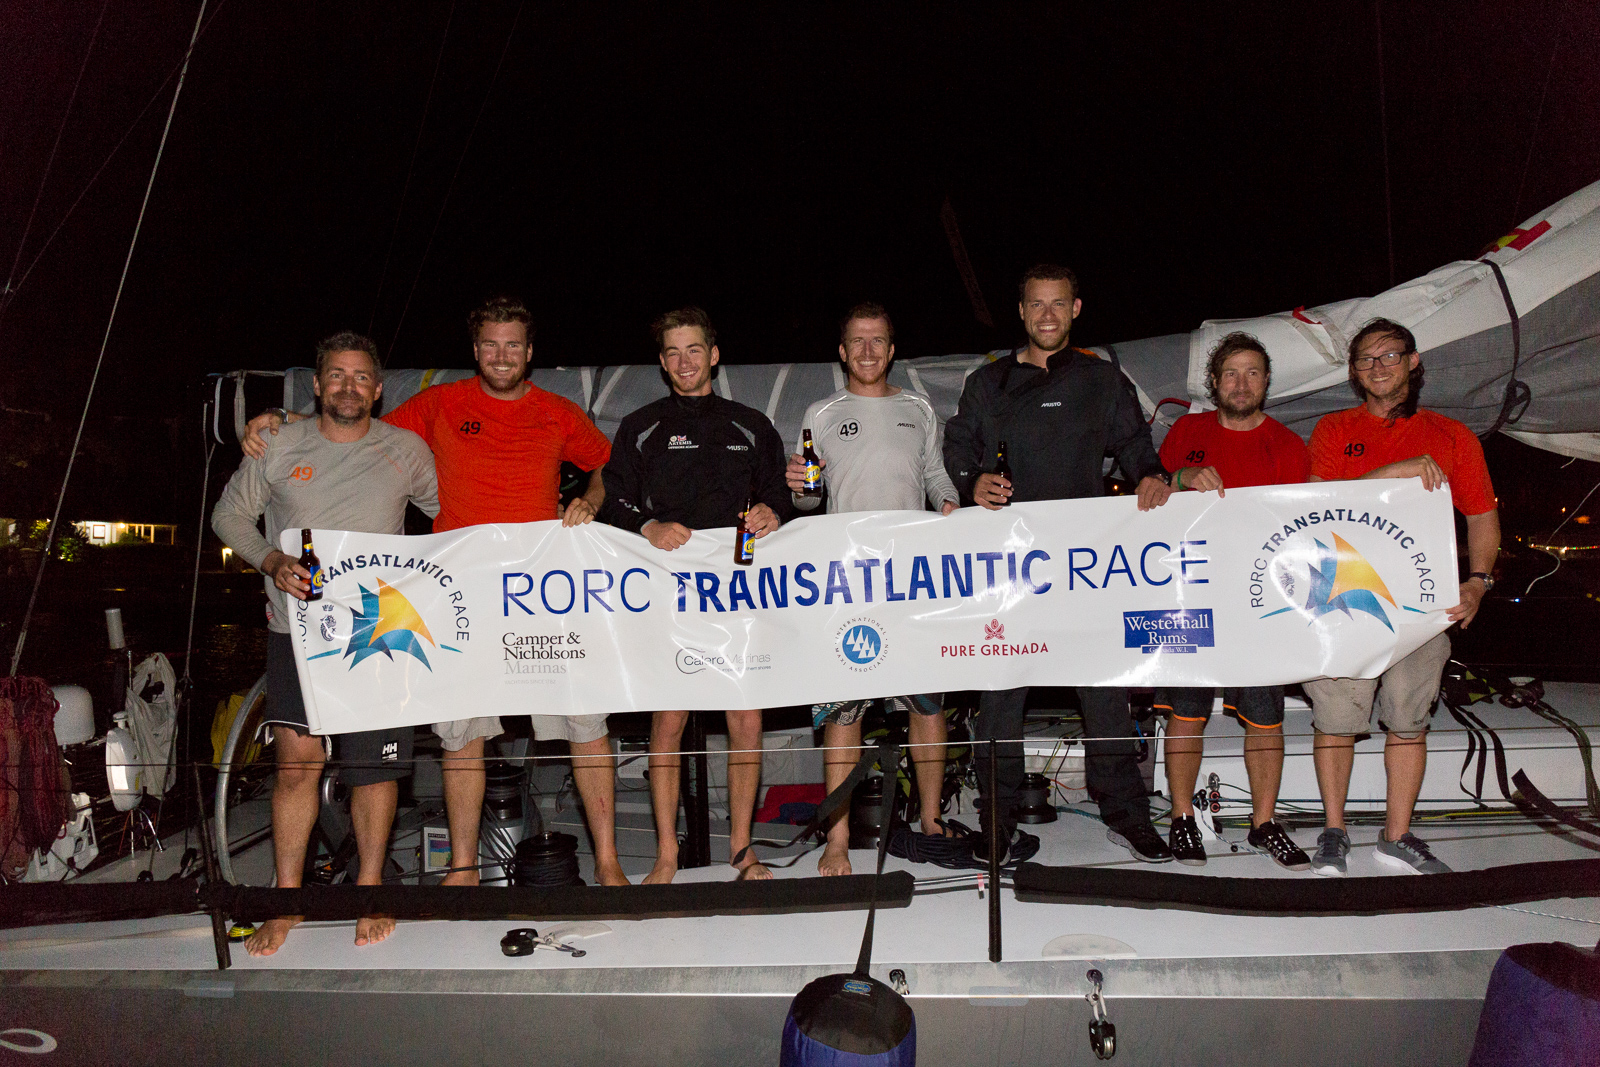 Skipper, Olly Cotterell and Team Maverick, Inifiniti 46 having crossed the finish line in Grenada celebrate dockside at Port Louis Marina in the early hours of Saturday © RORC/Arthur Daniel